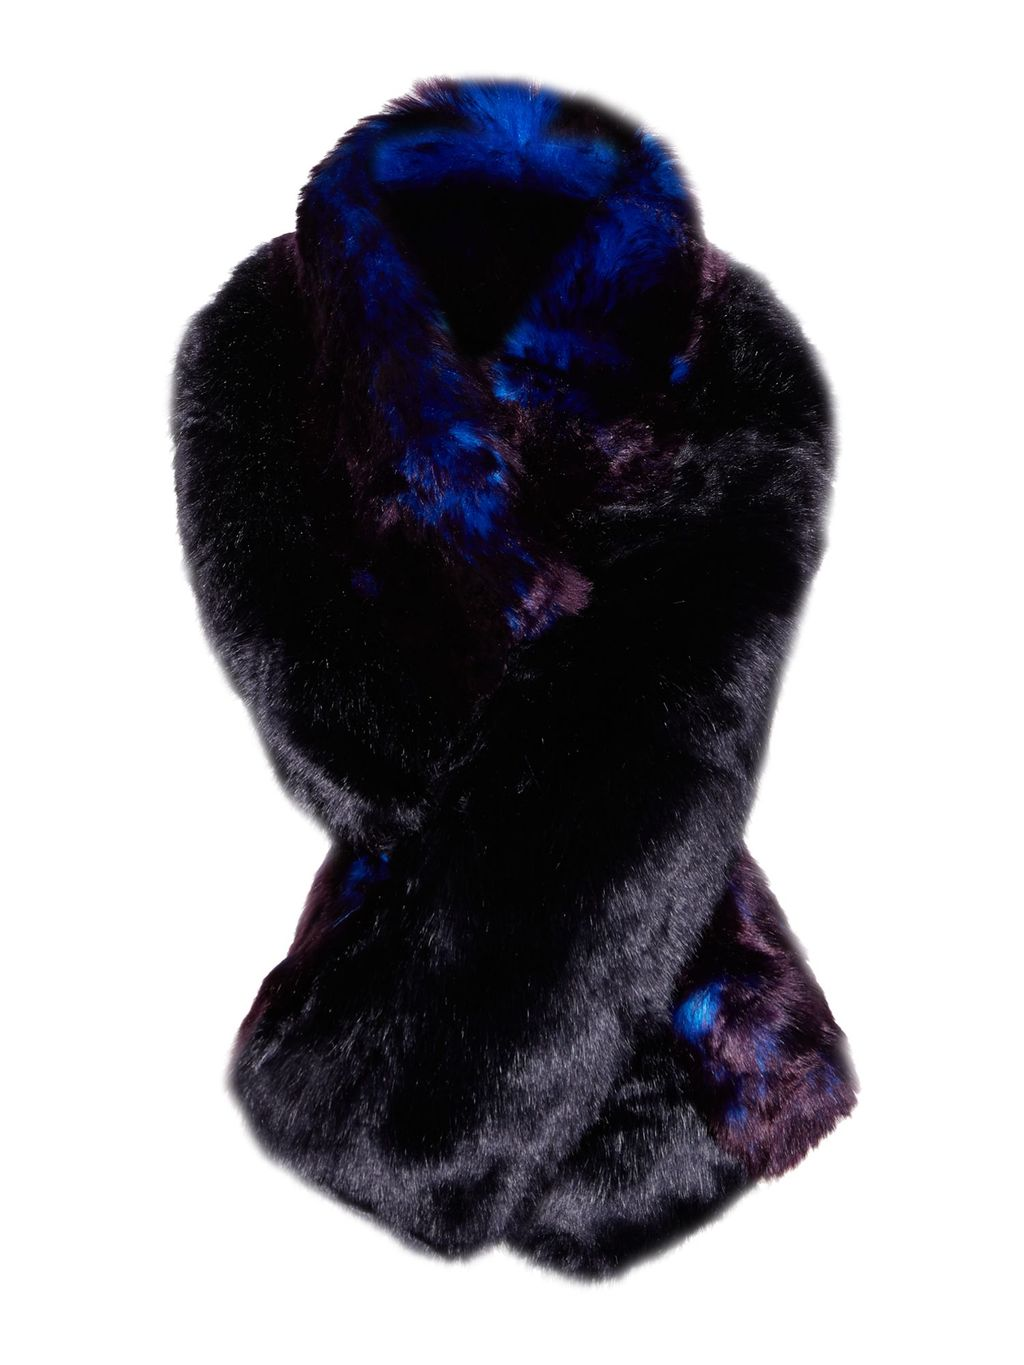 Wyn Double Stripe Faux Fur Scarf, Blue - predominant colour: navy; occasions: casual, creative work; type of pattern: standard; style: regular; size: standard; material: fur; pattern: plain; season: a/w 2016